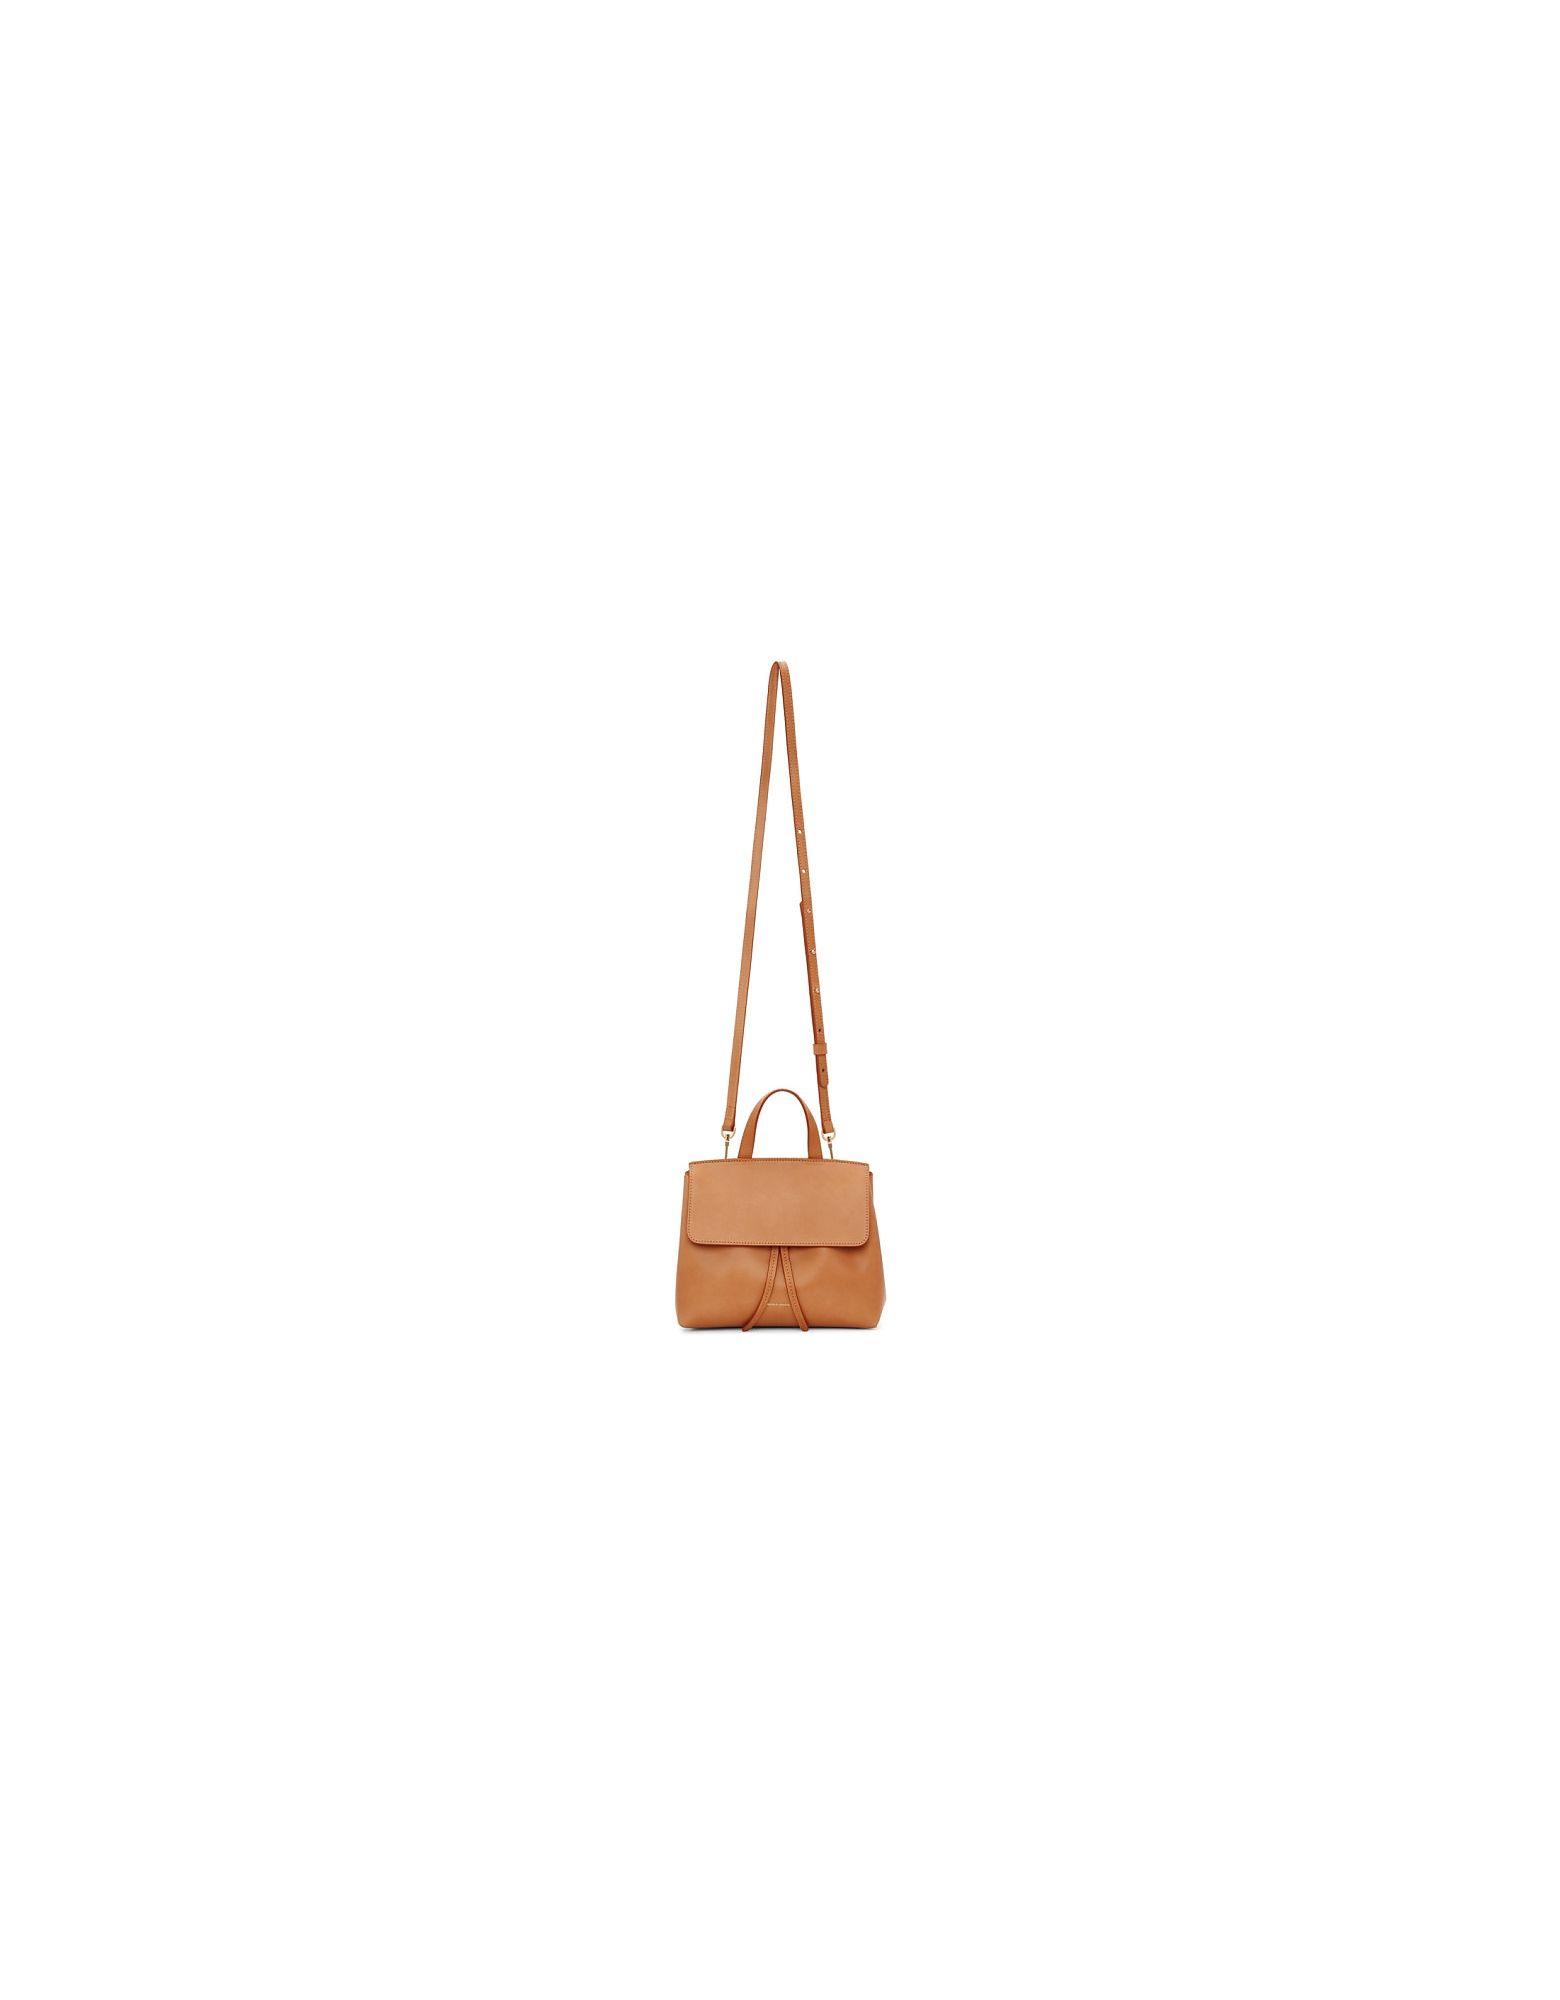 Mansur Gavriel Designer Handbags, Tan Mini Mini Lady Bag